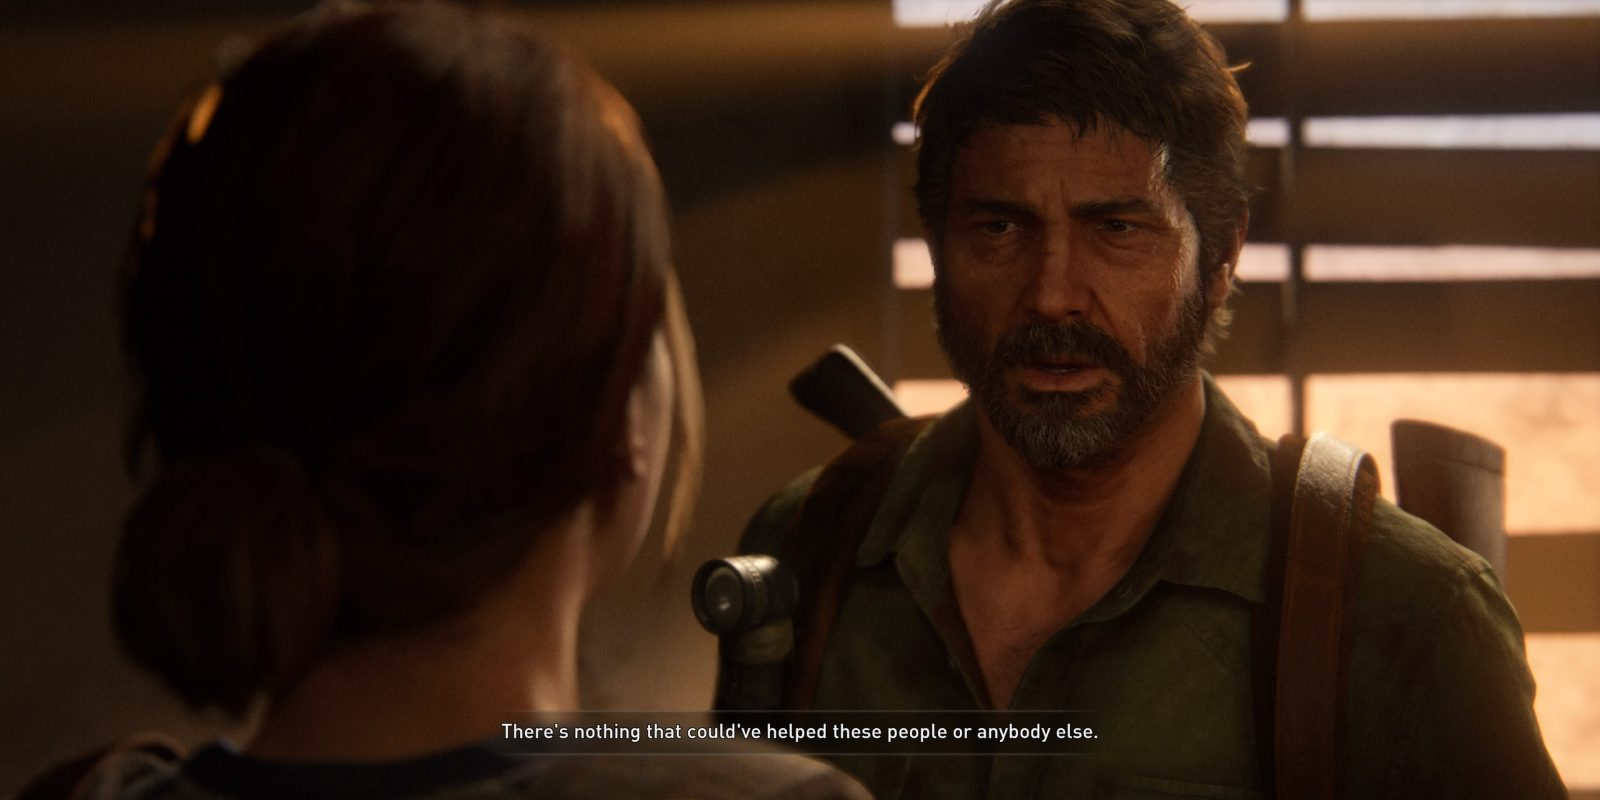 The Last Of Us 2: A Conflicted Experience